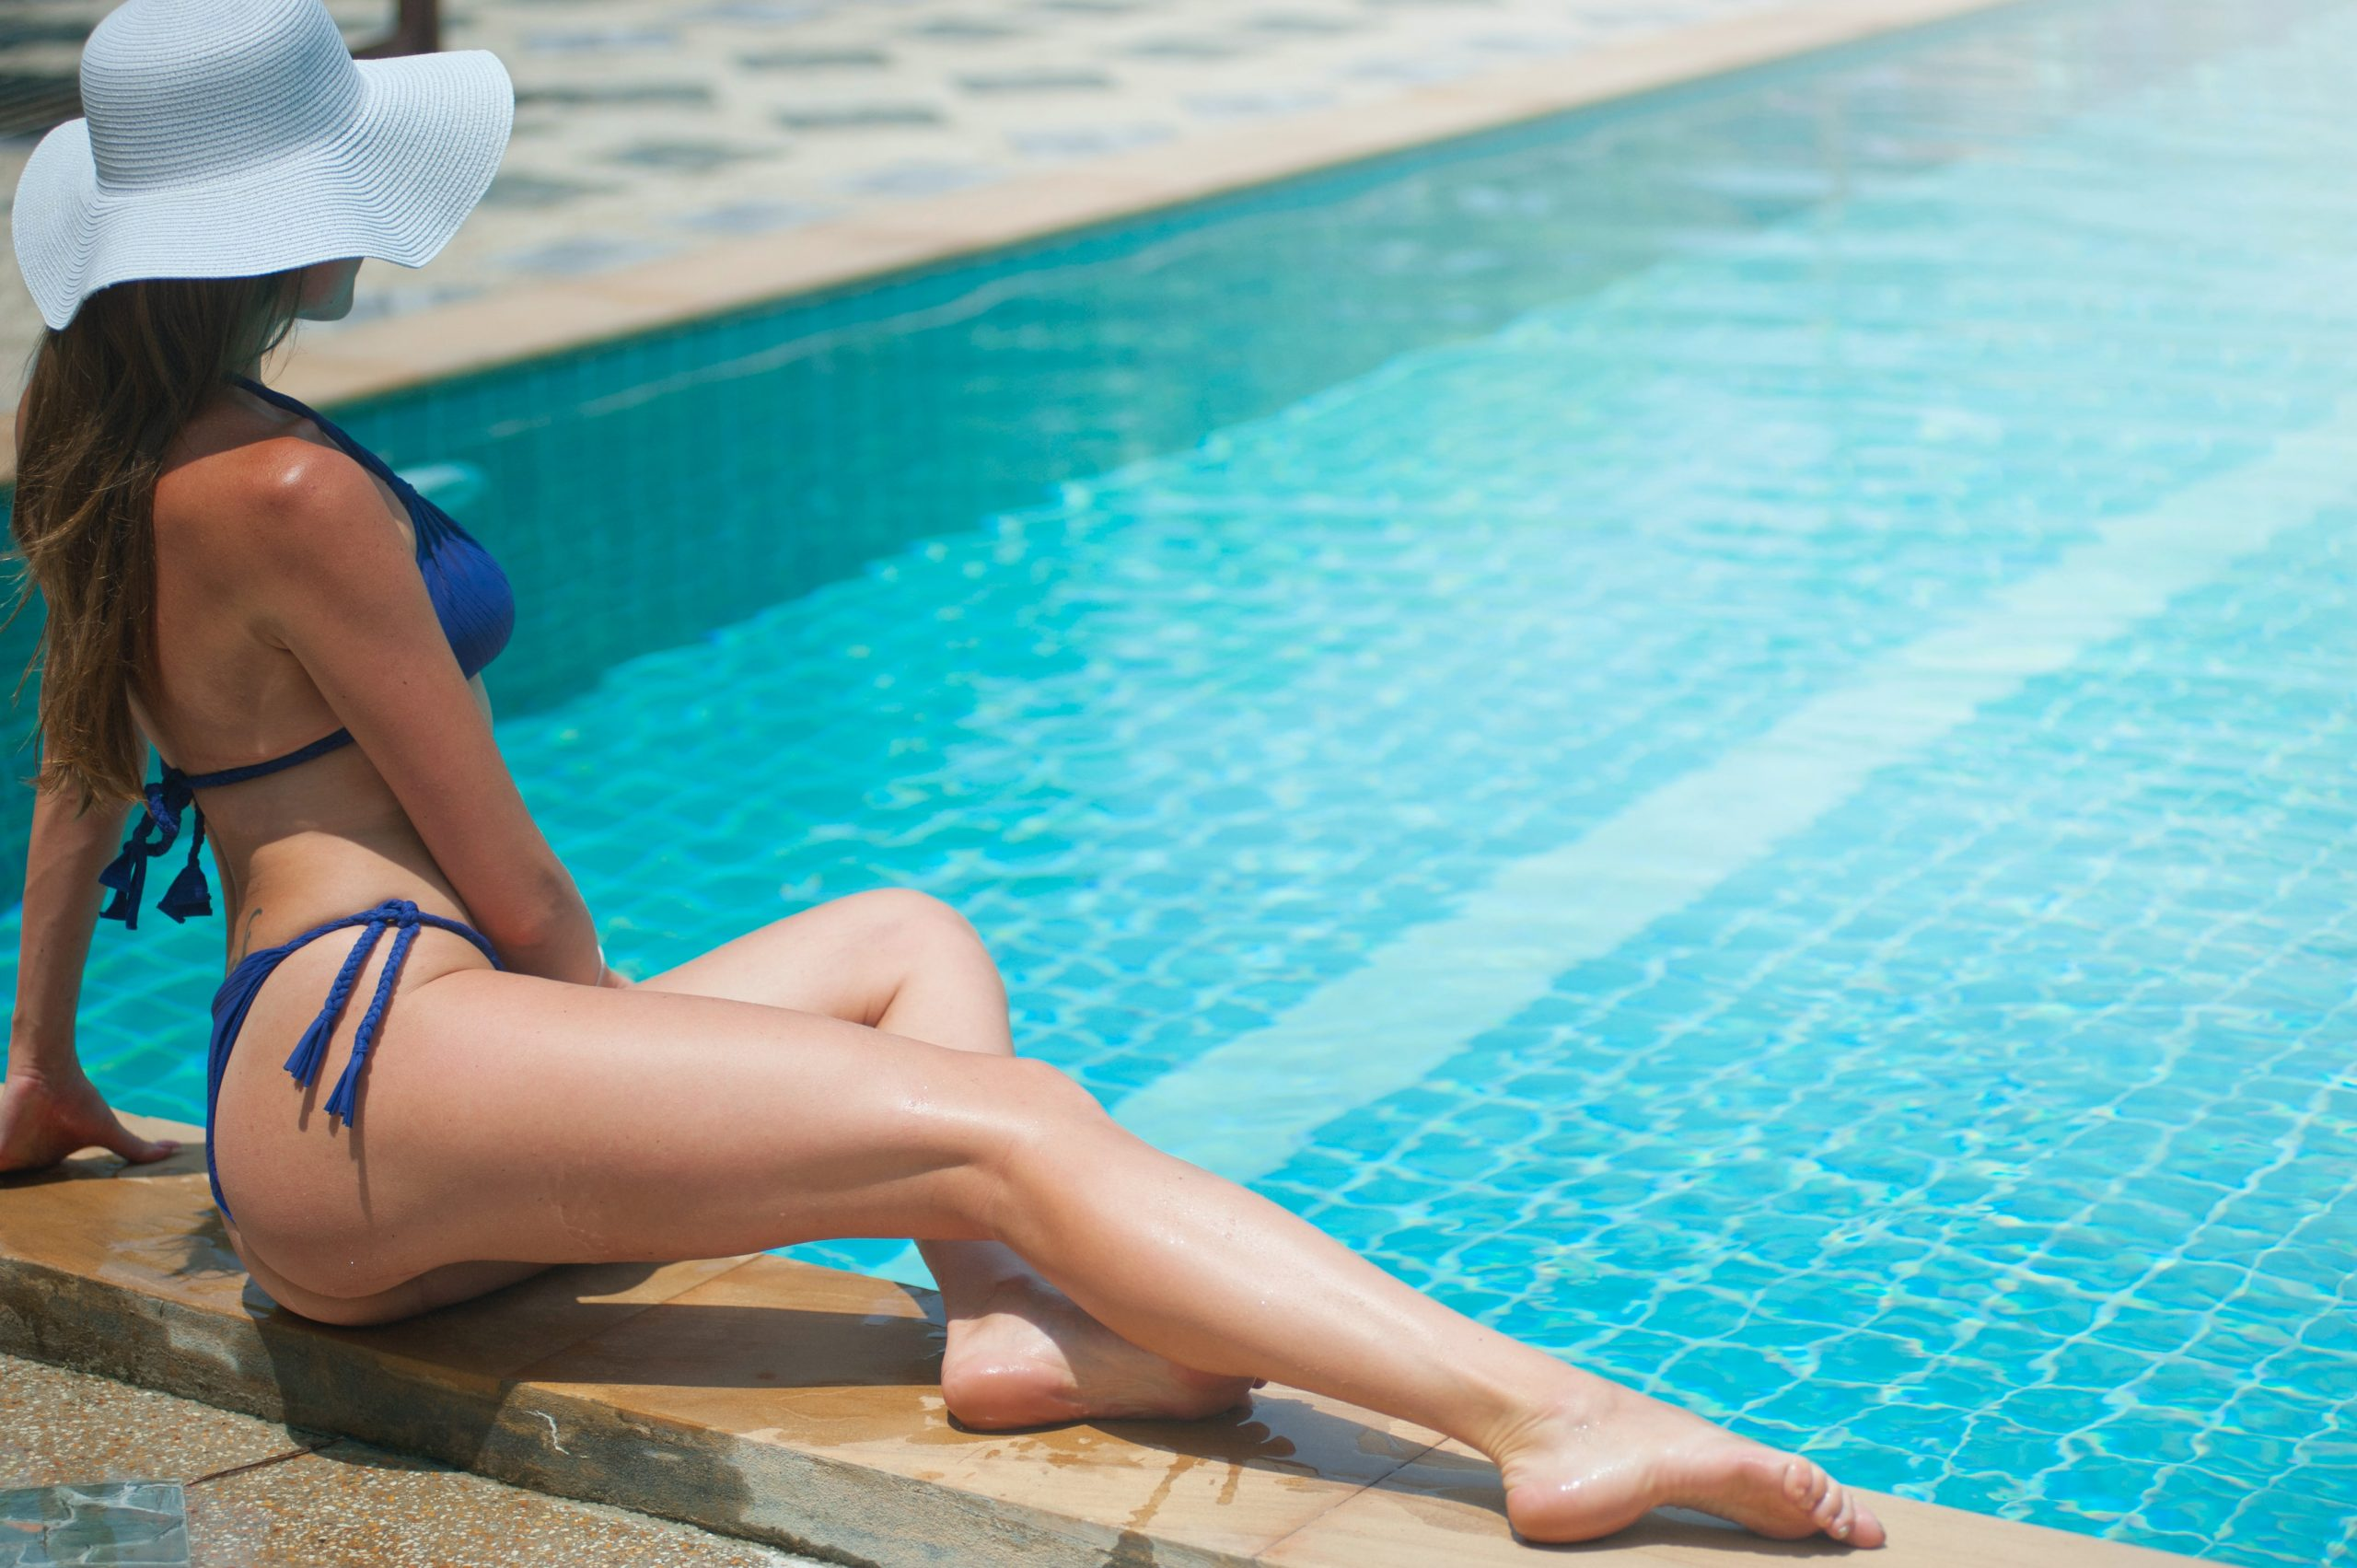 Laser Hair Removal: Procedure Overview